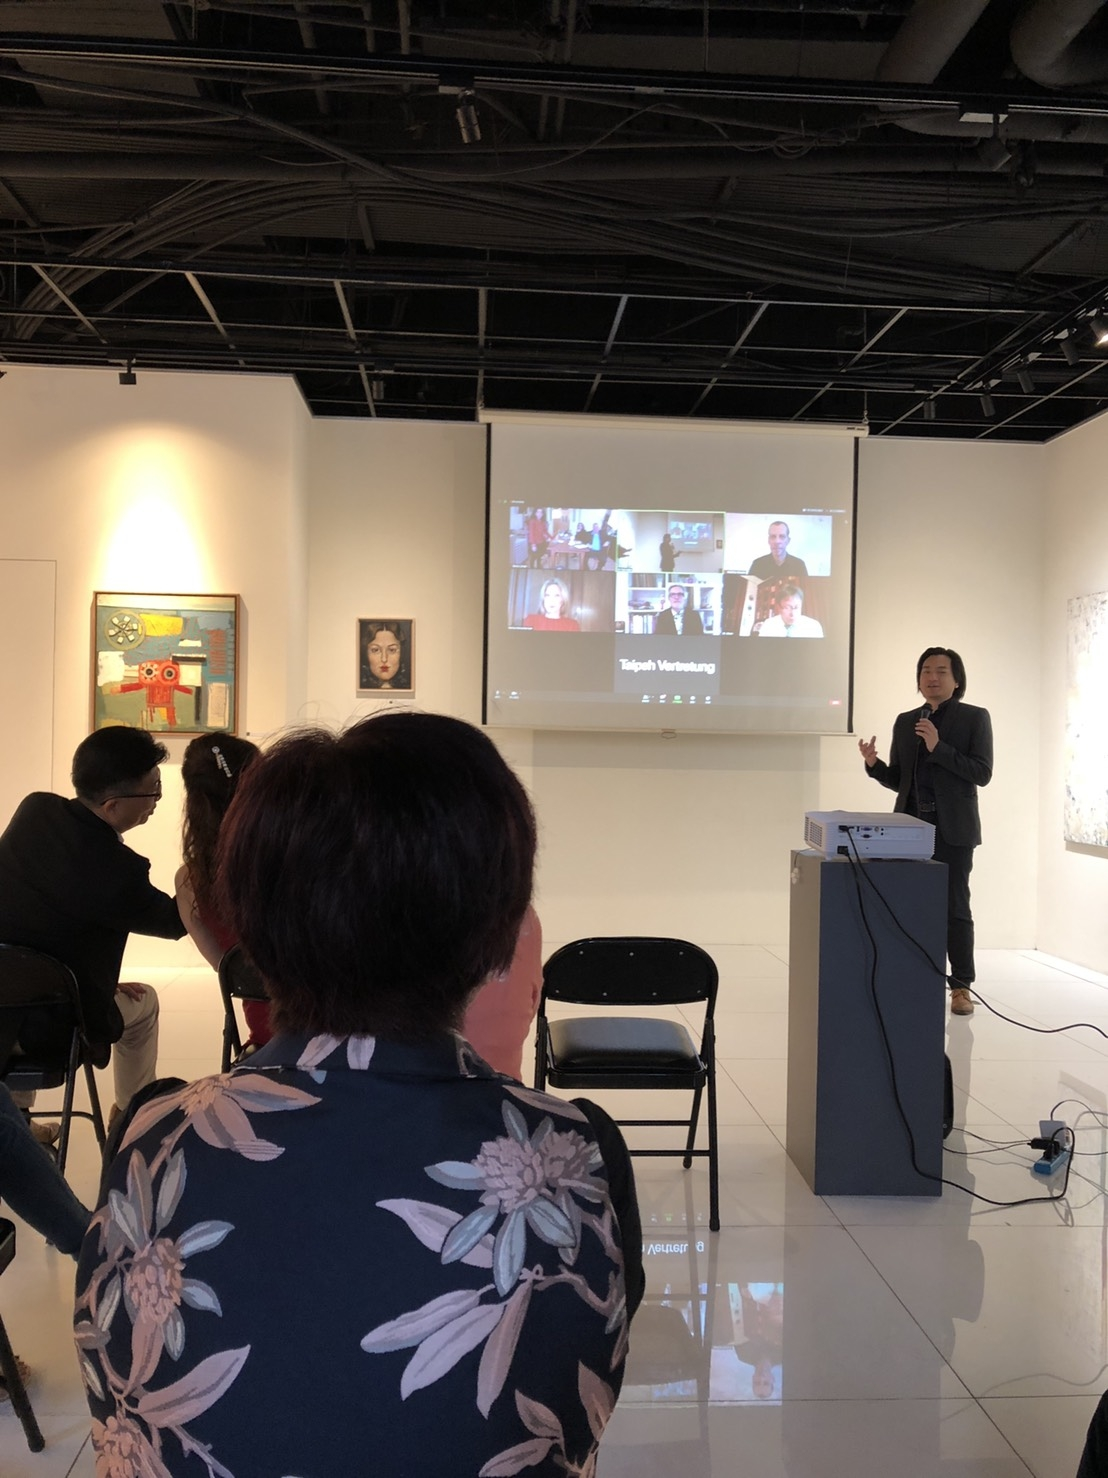 Vernissage - Speech of Yu Tzu-Chun, Director Rodin Art Space Gallery